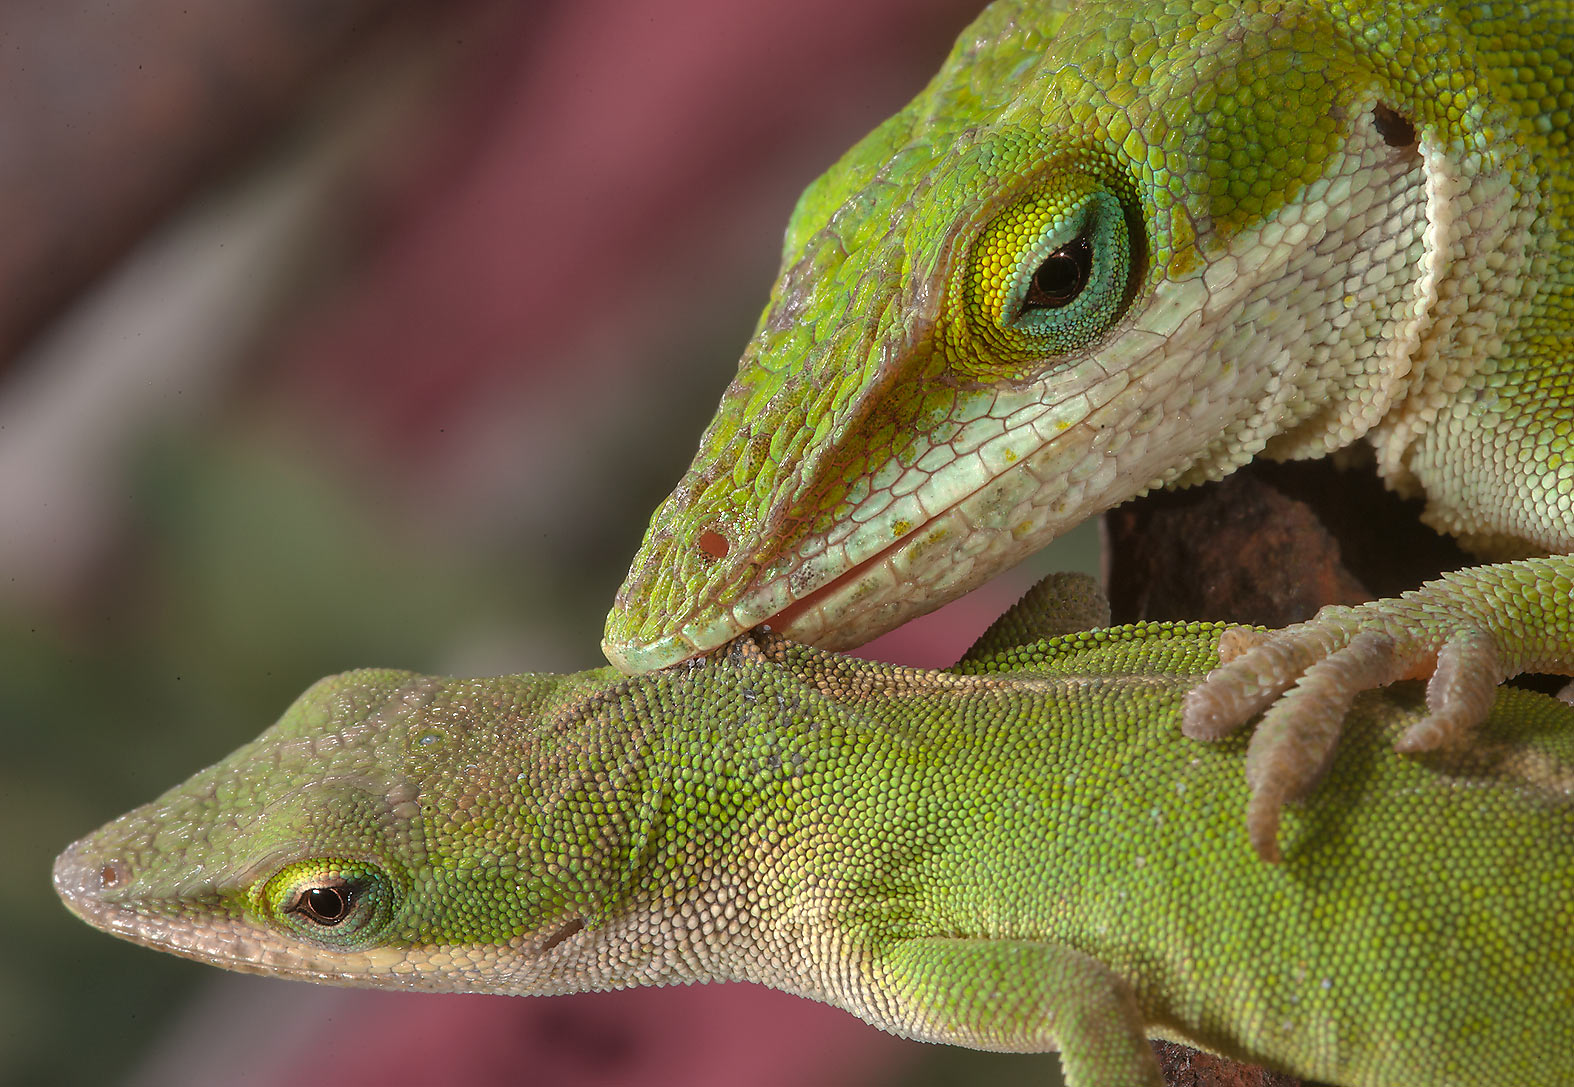 Couple of green anole lizards in Antique Rose Emporium. Independence, Texas